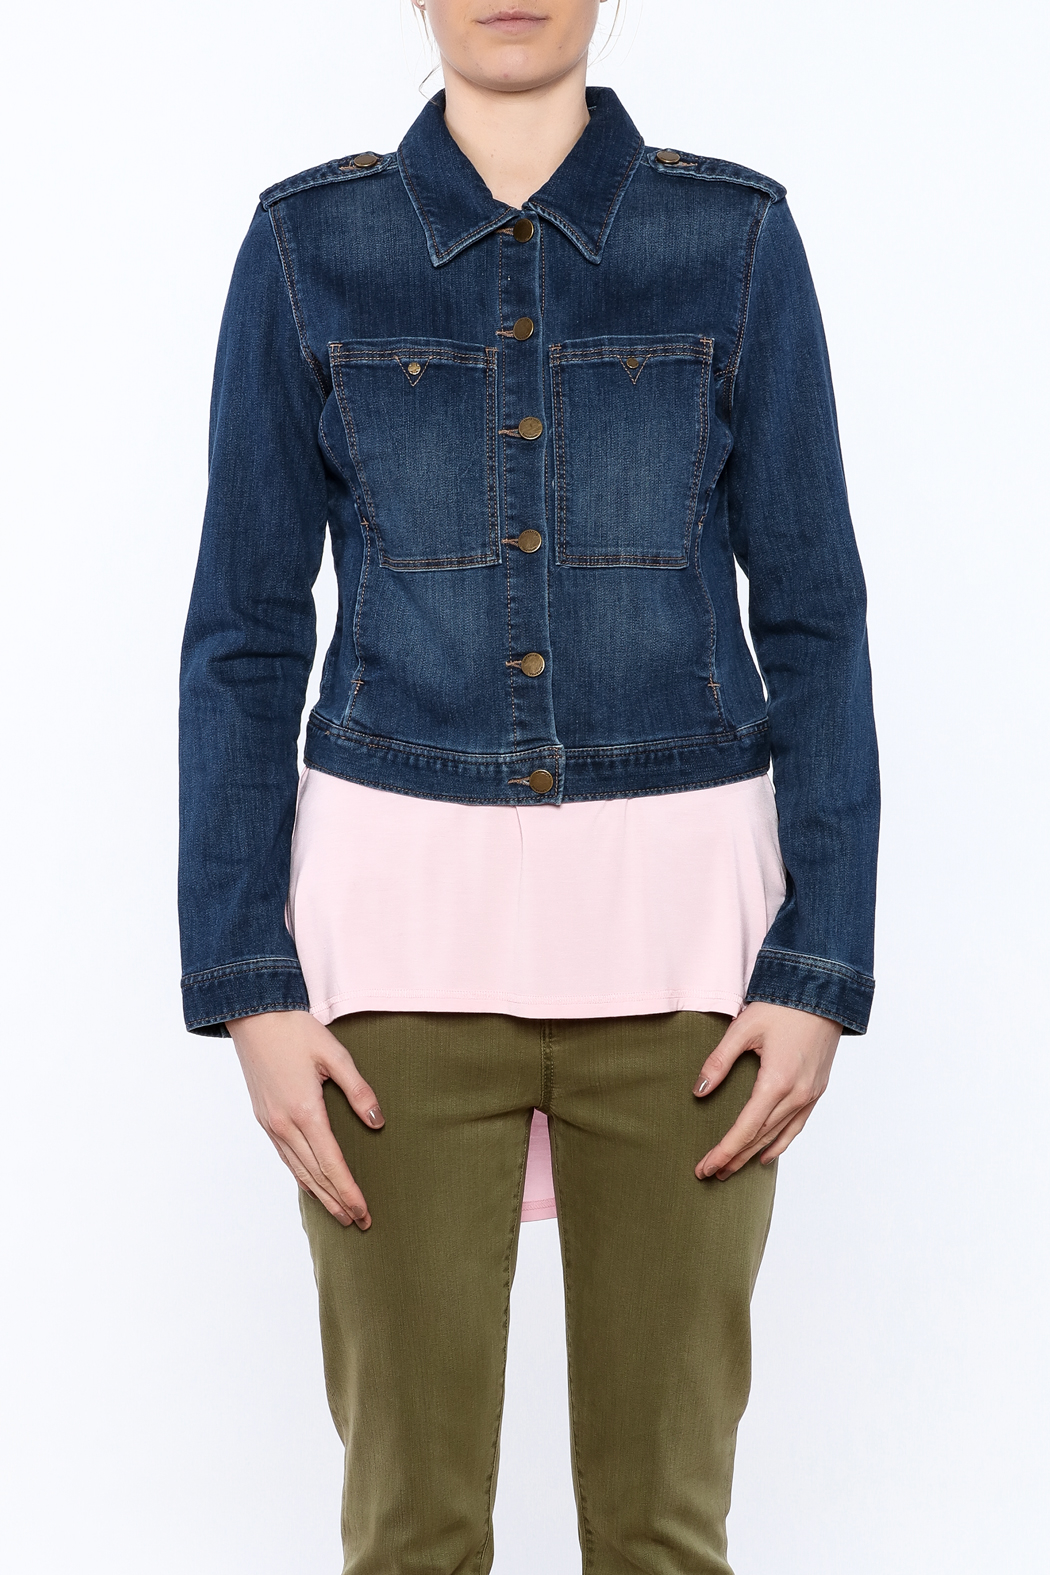 Liverpool Jeans Company Classic Denim Jacket - Side Cropped Image